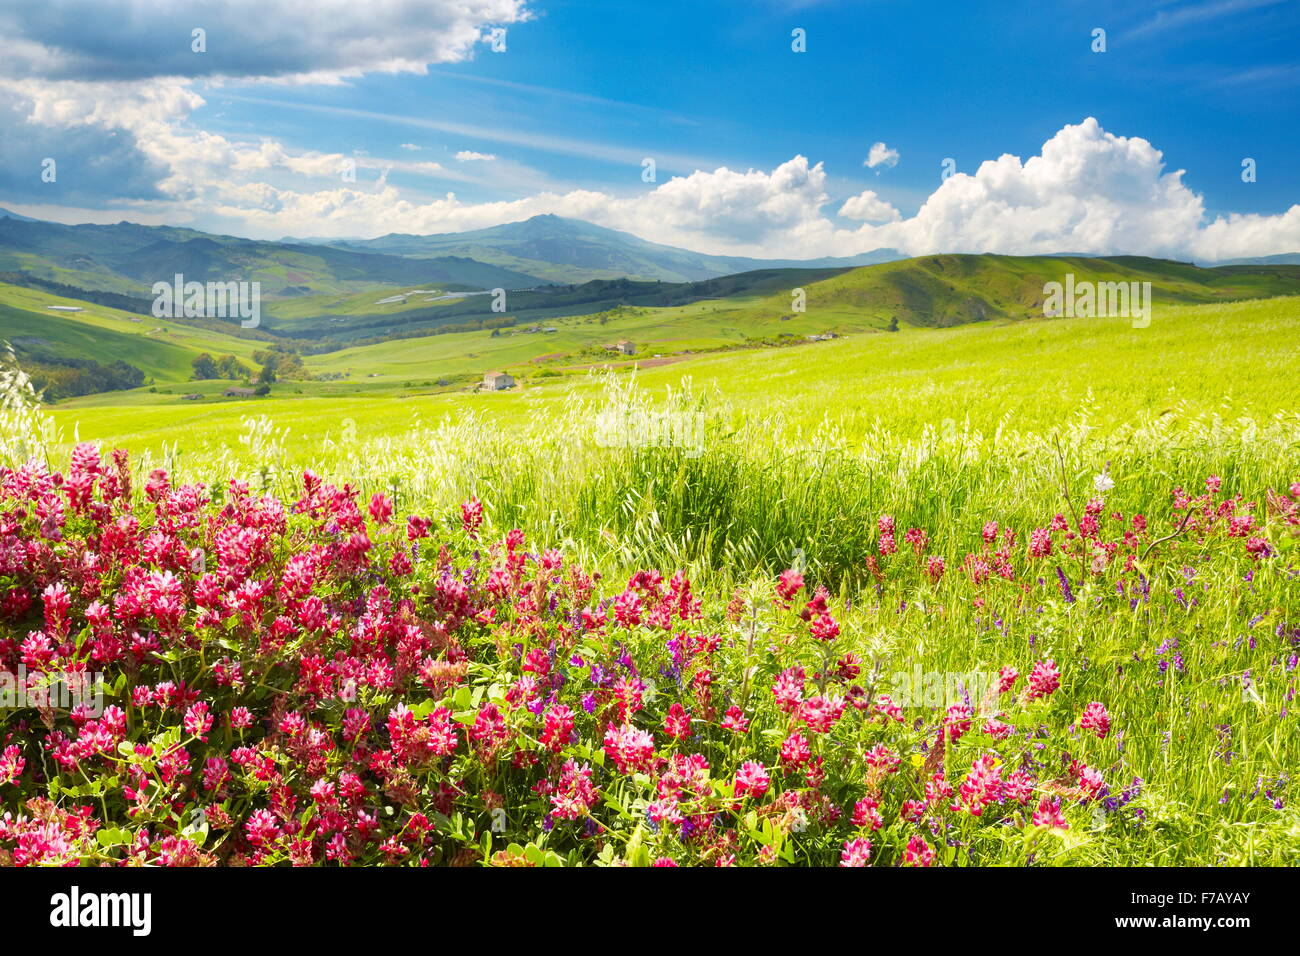 Sicily spring meadow landscape with flowers, Sicily Island, Italy - Stock Image